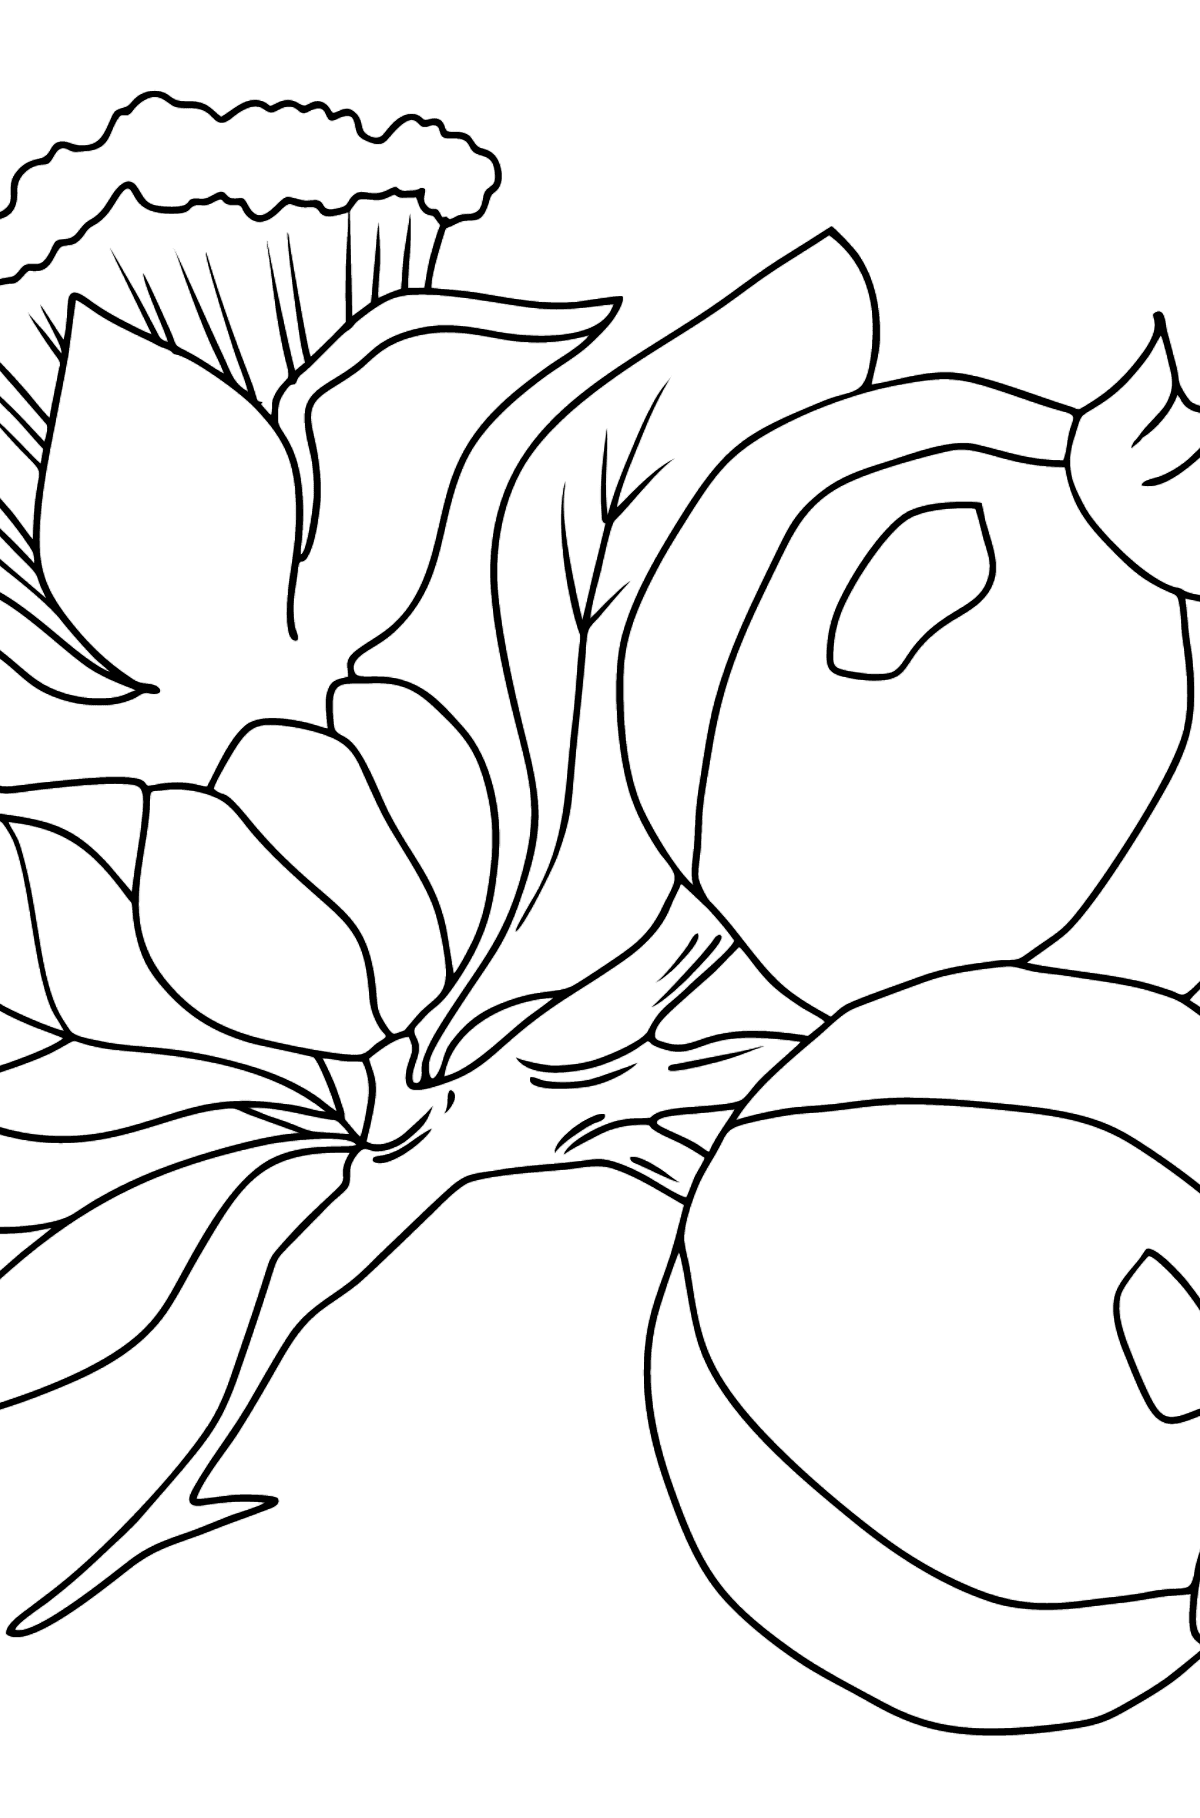 Coloring Page - flowers and fruits - Coloring Pages for Kids